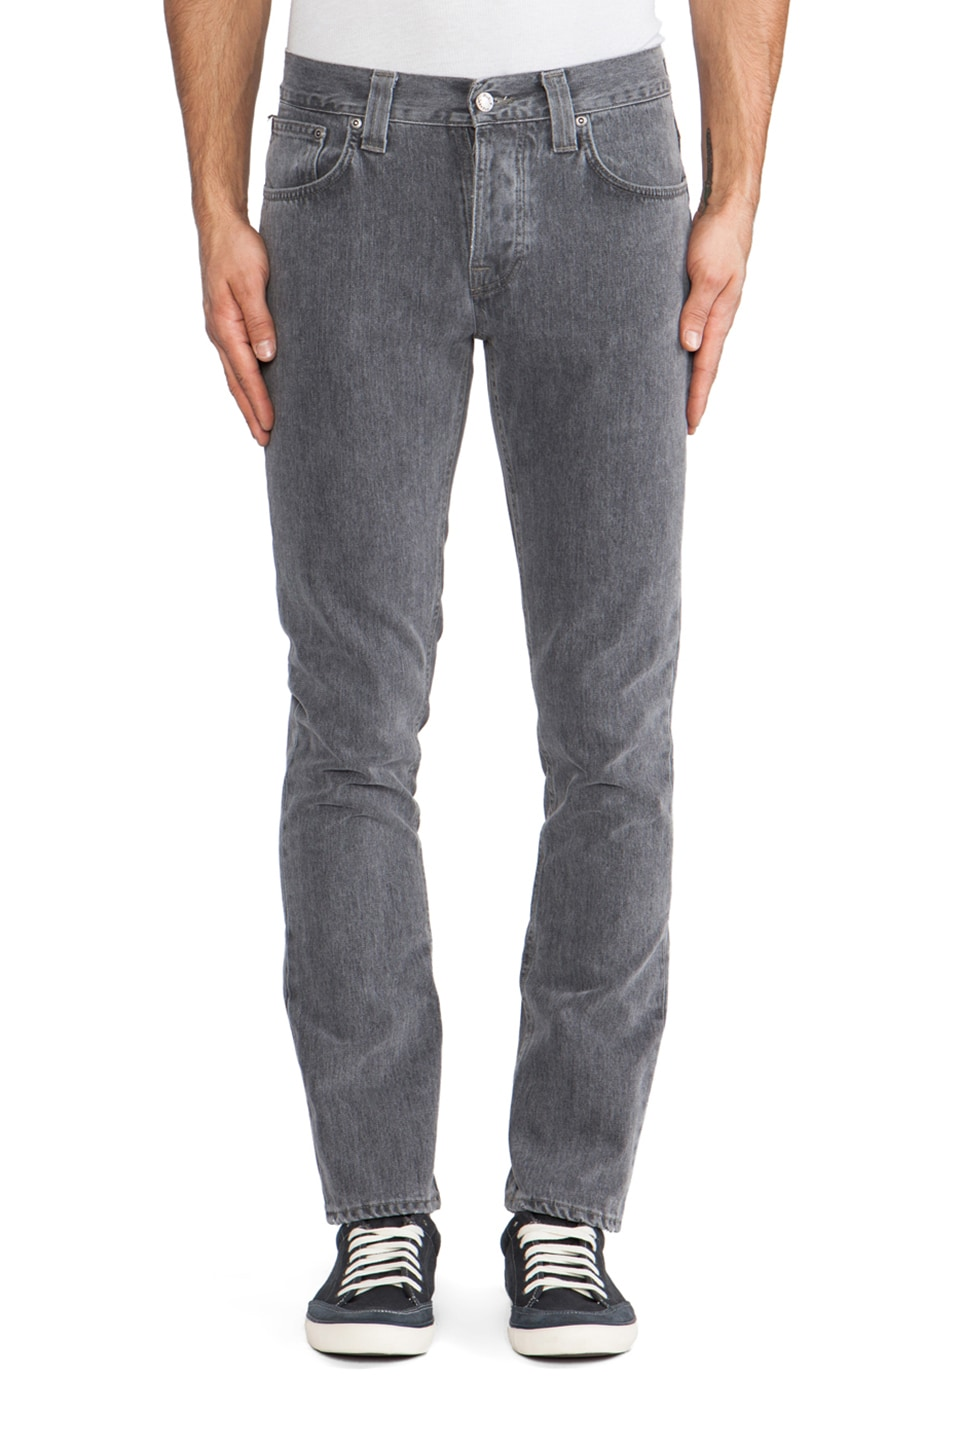 Nudie Jeans Grim Tim in Org. Grey Phantom